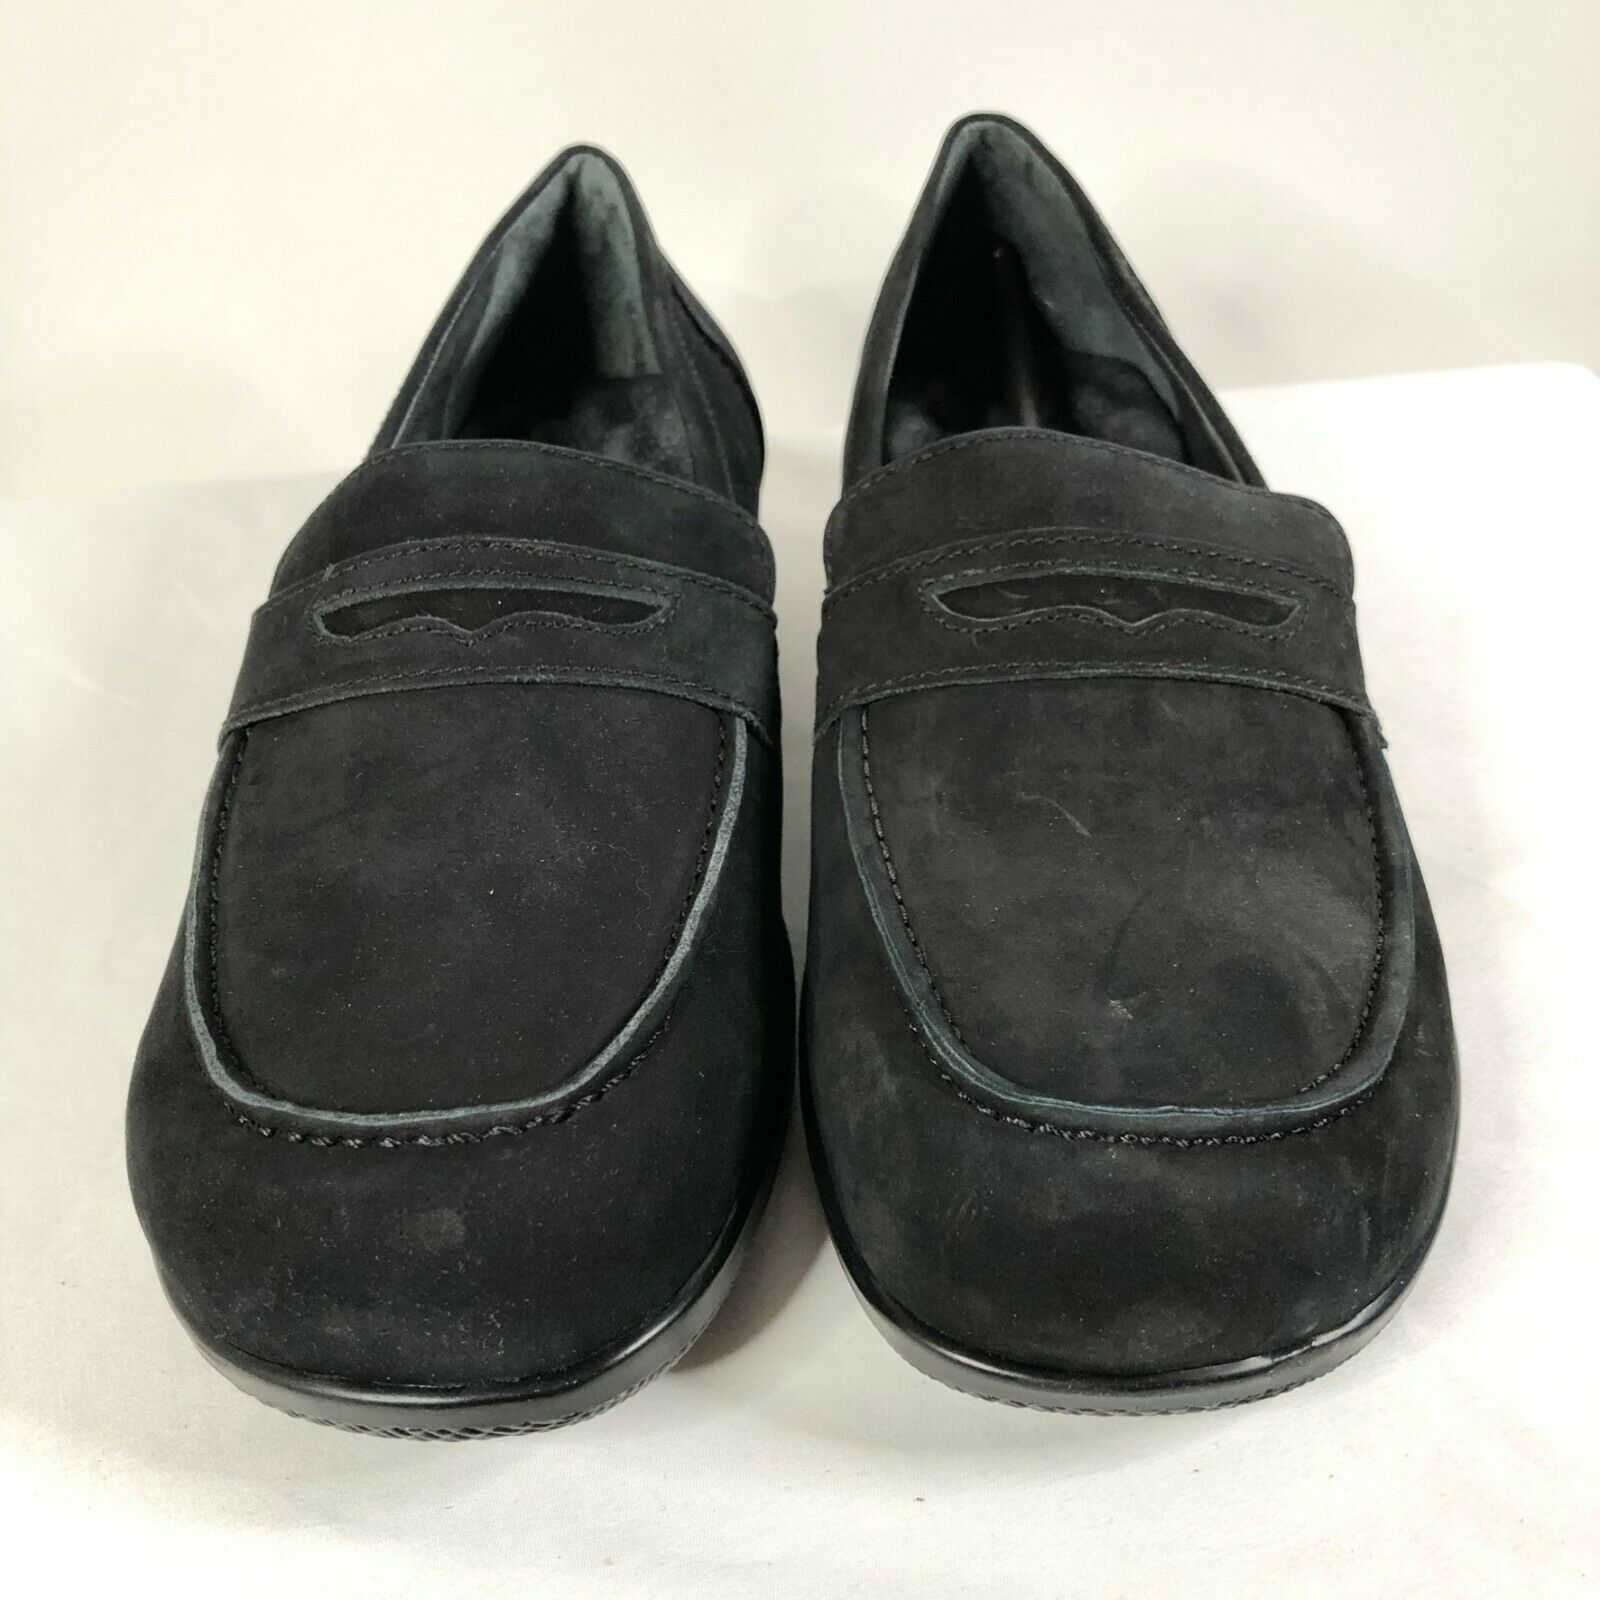 SoftWalk Womens Loafers Slip On Faux Suede Cushioned Insole Black 10WW Wide